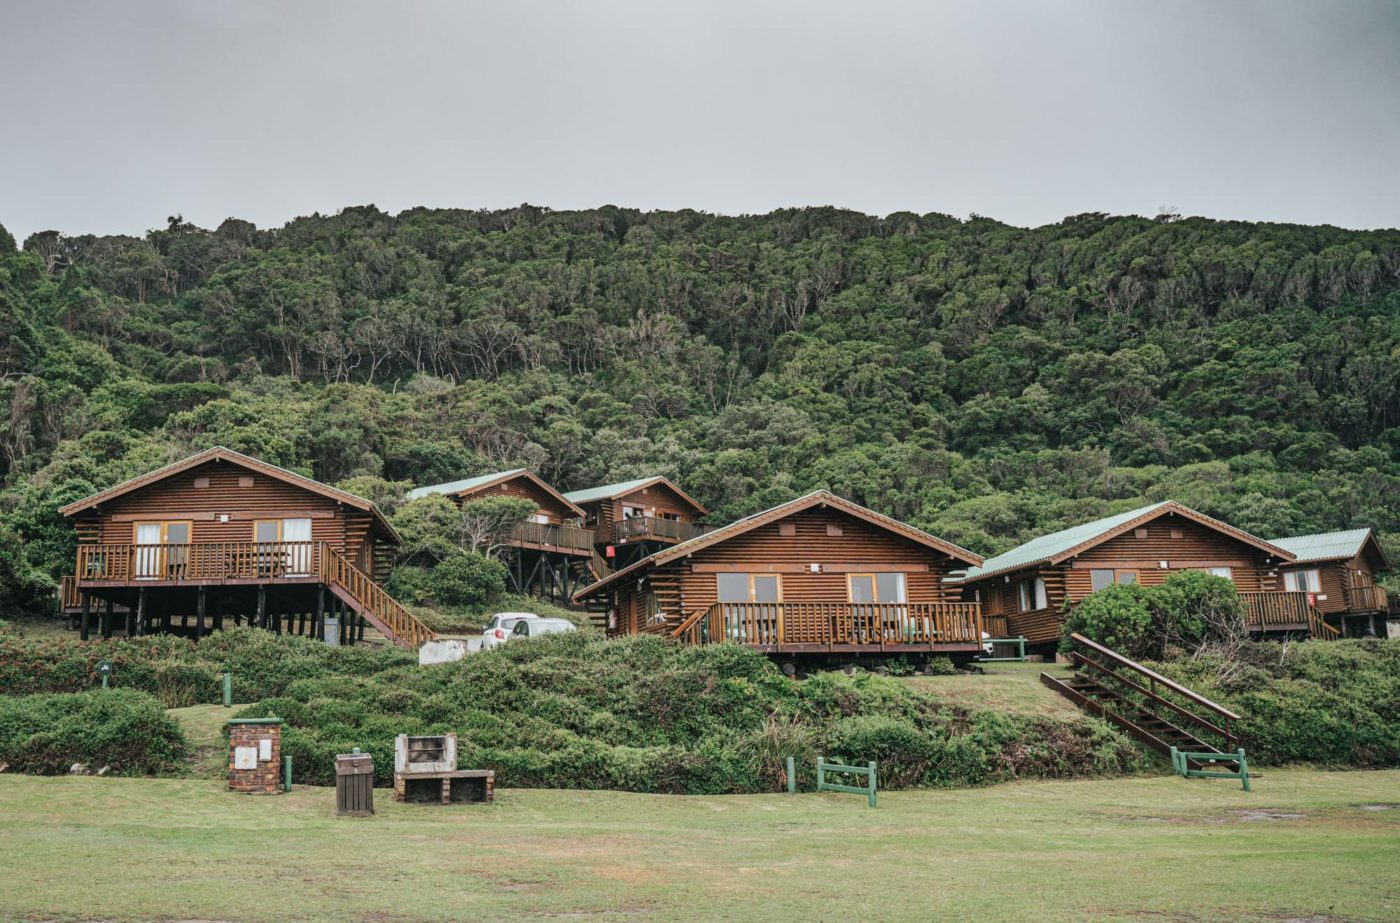 Cabins on the beach in Tsitsikamma National Park